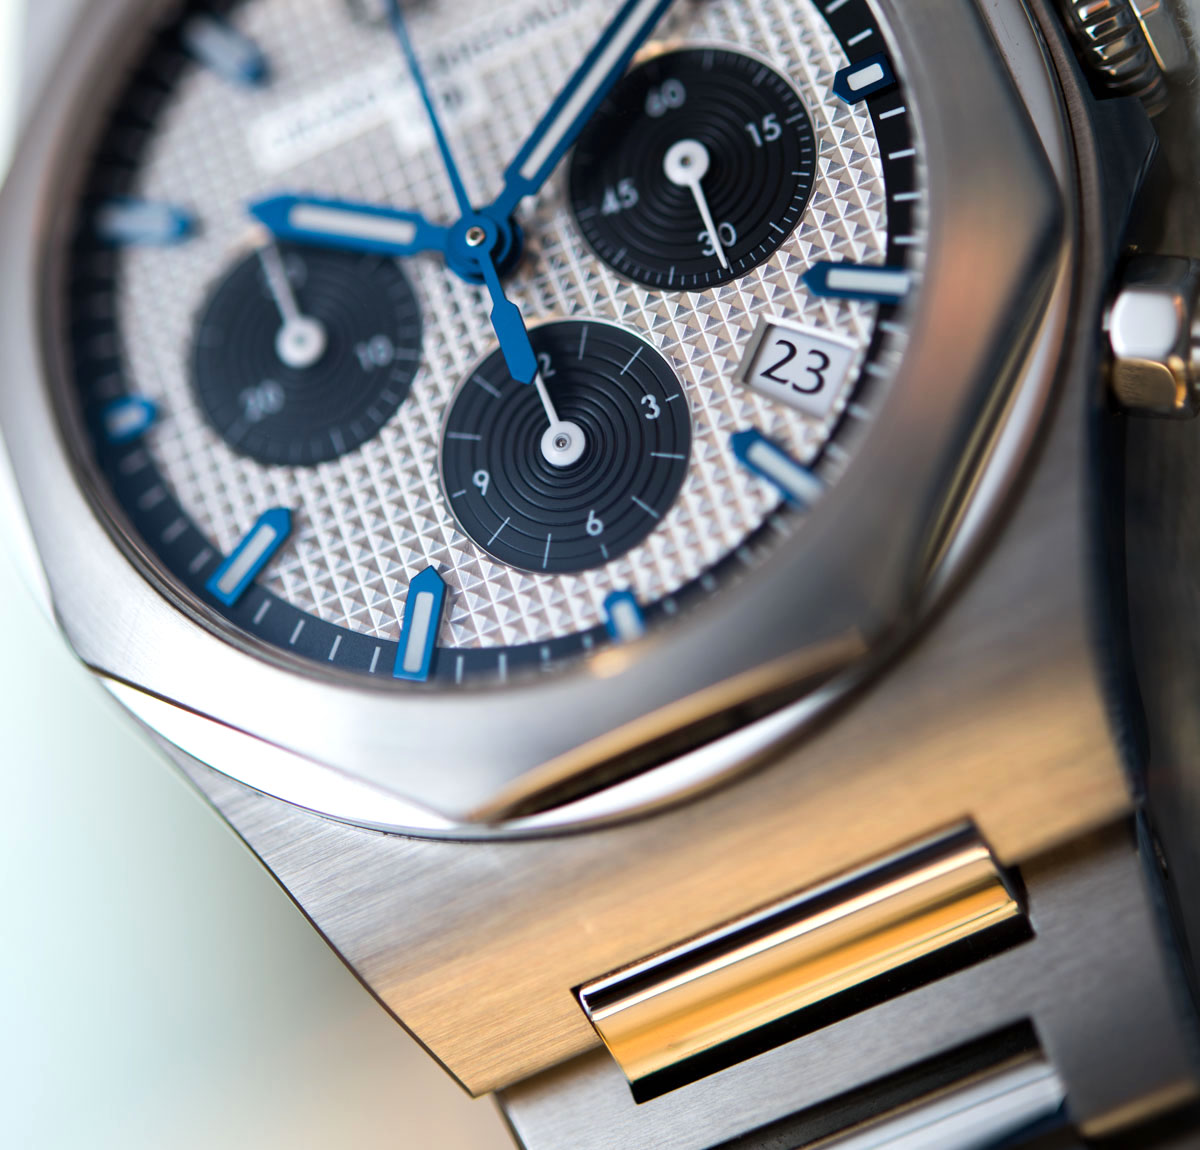 Girard-Perregaux Laureato Chronograph 38mm Watch Review Wrist Time Reviews